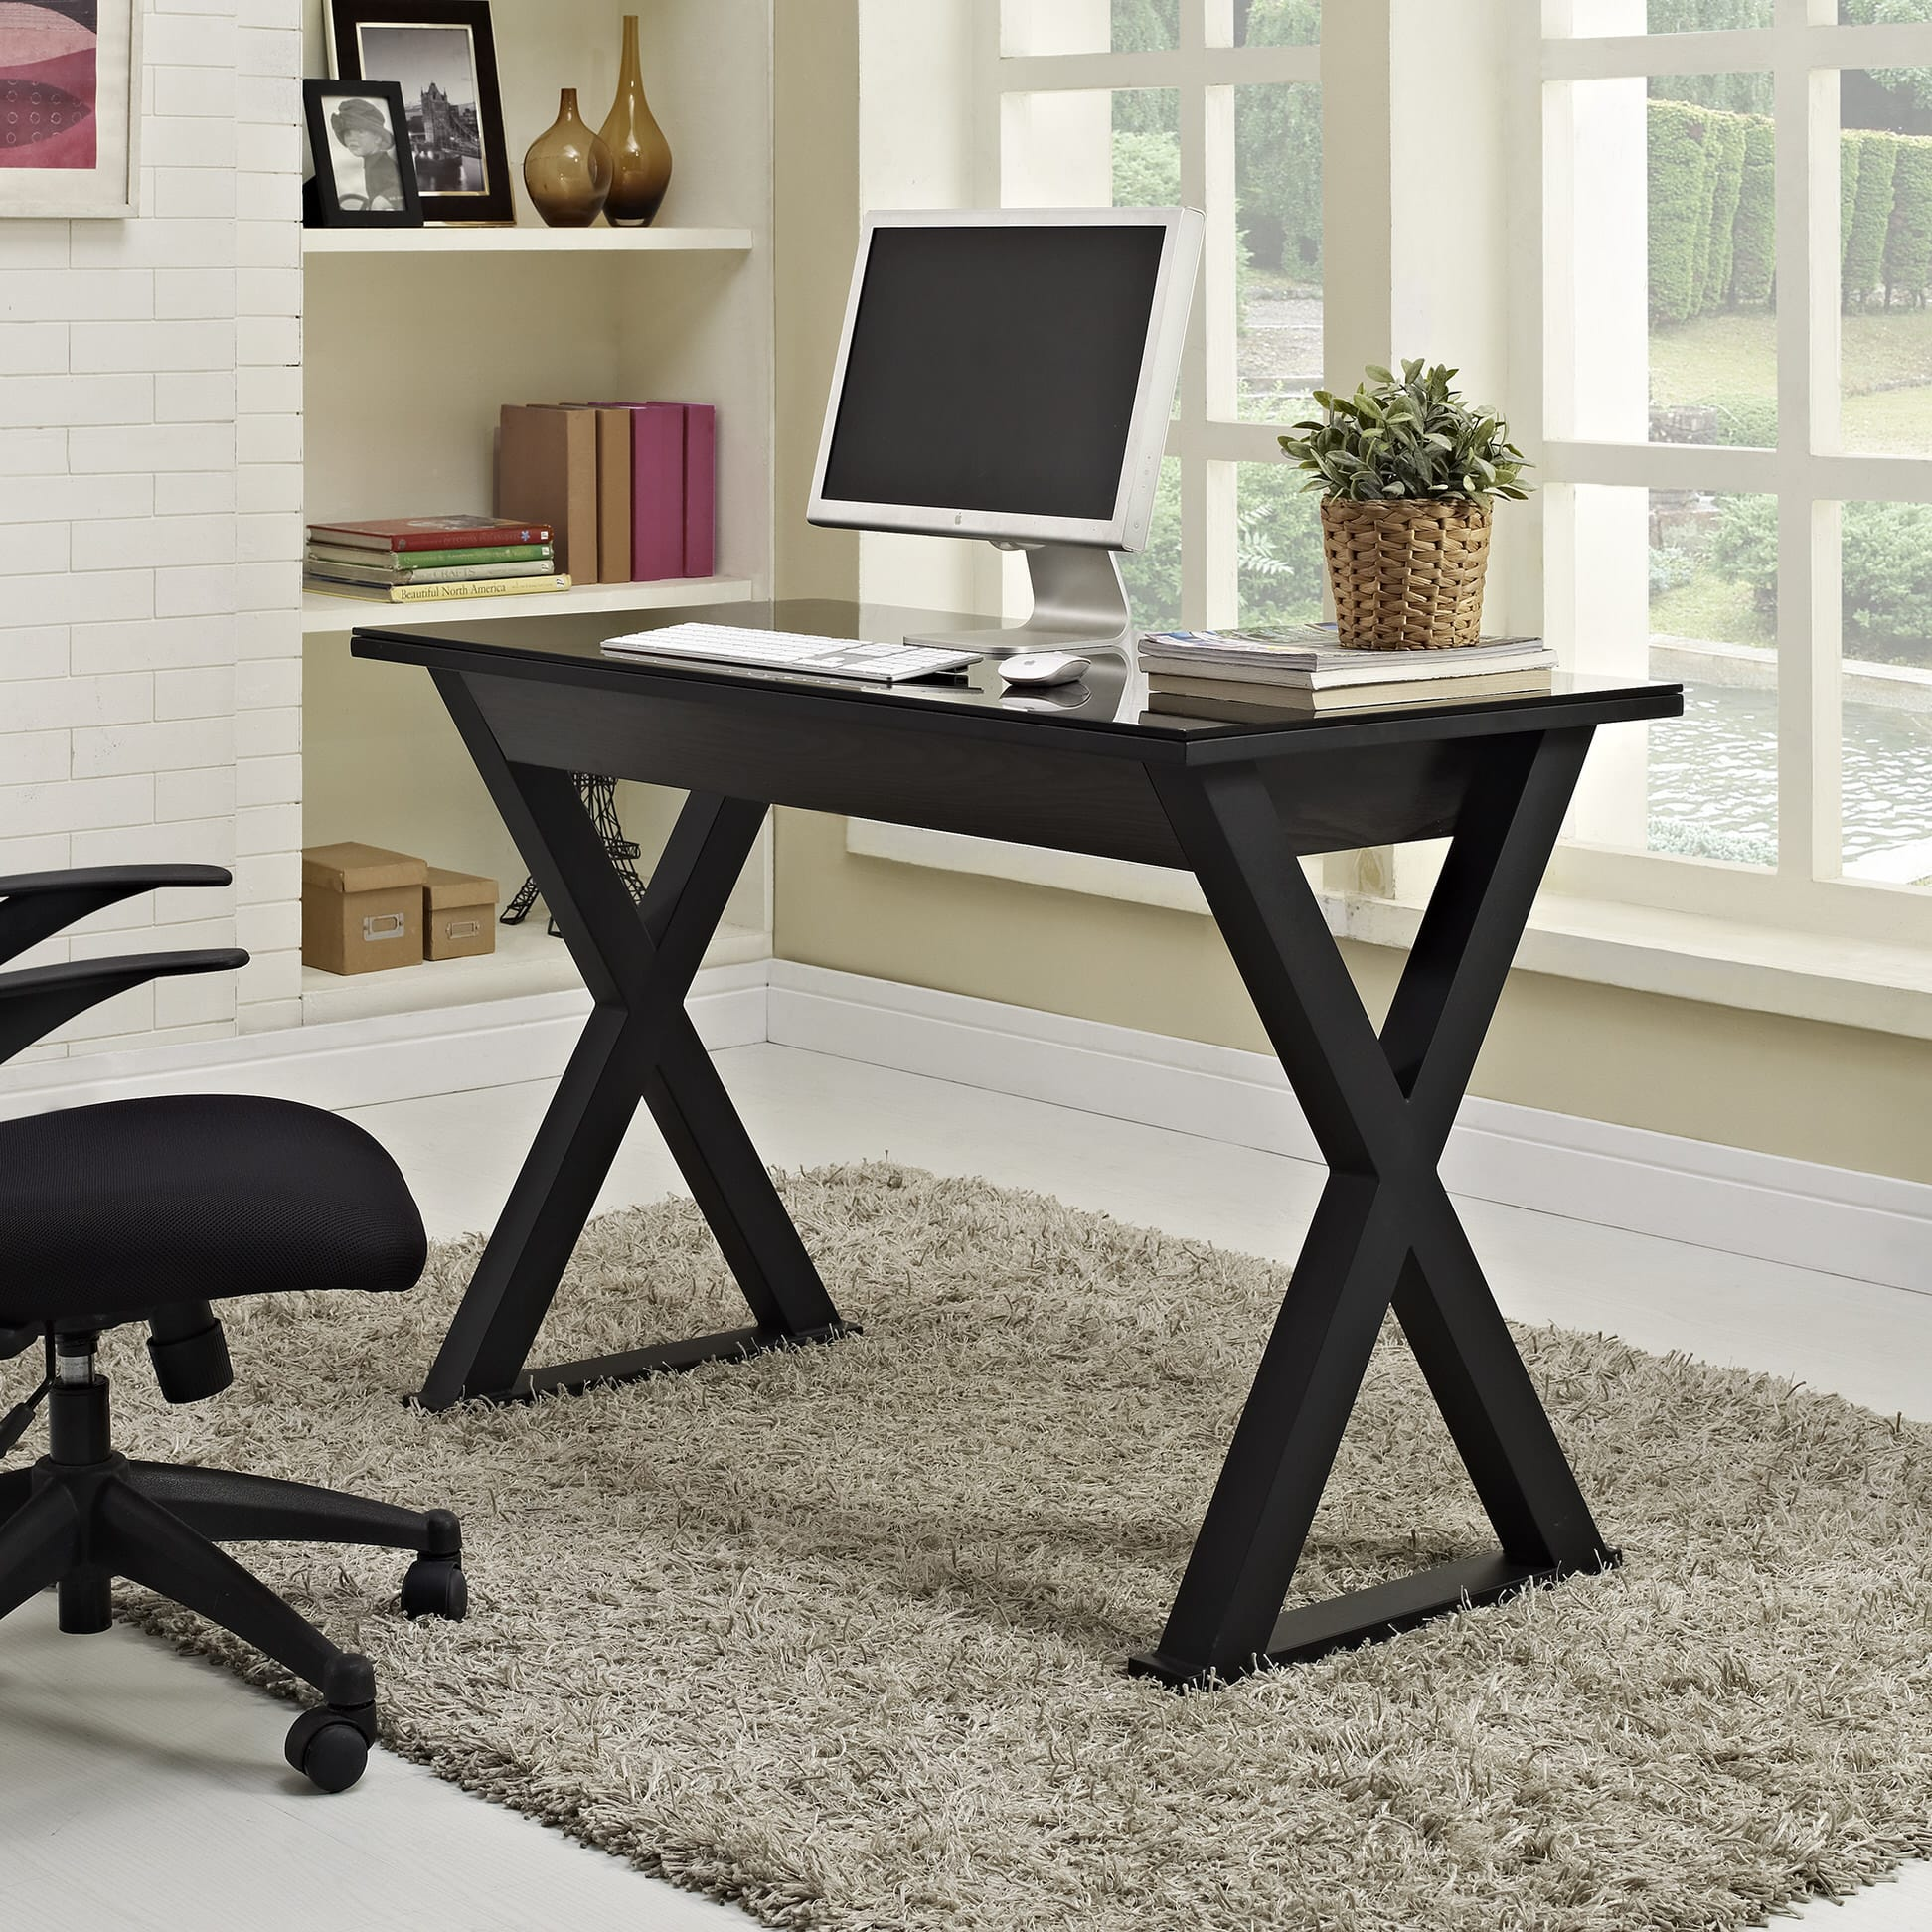 Xtra 48 Inch Computer Desk Black By Walker Edison